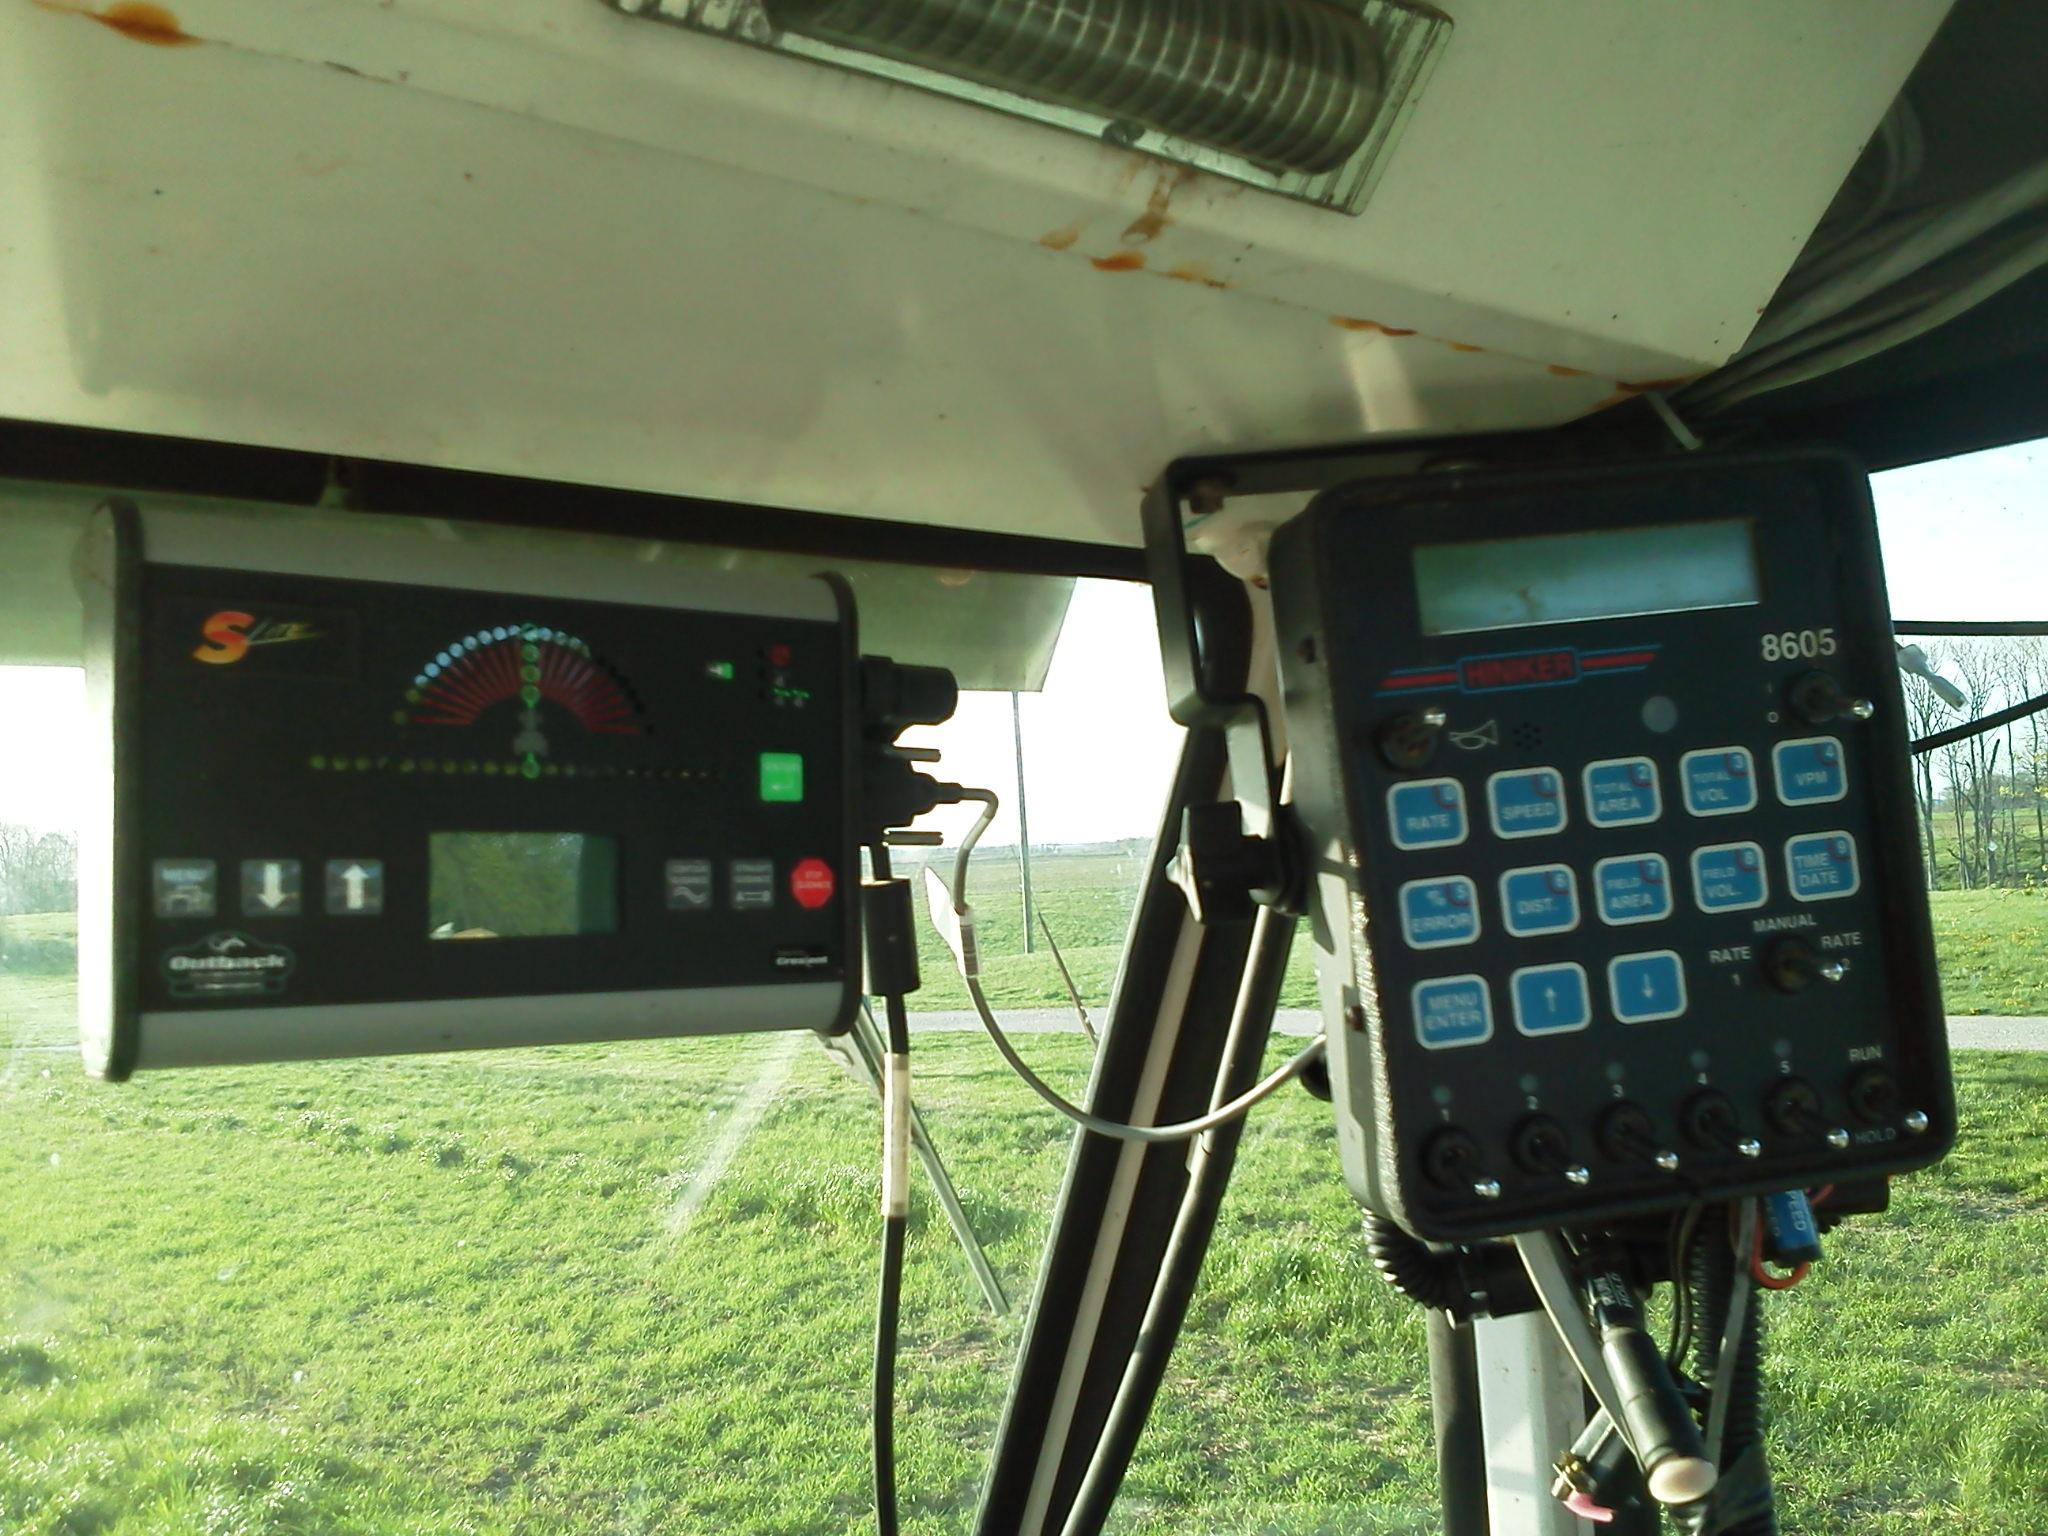 The Hiniker spray controller is connected to an Outback GPS lightbar with Auto Mate.